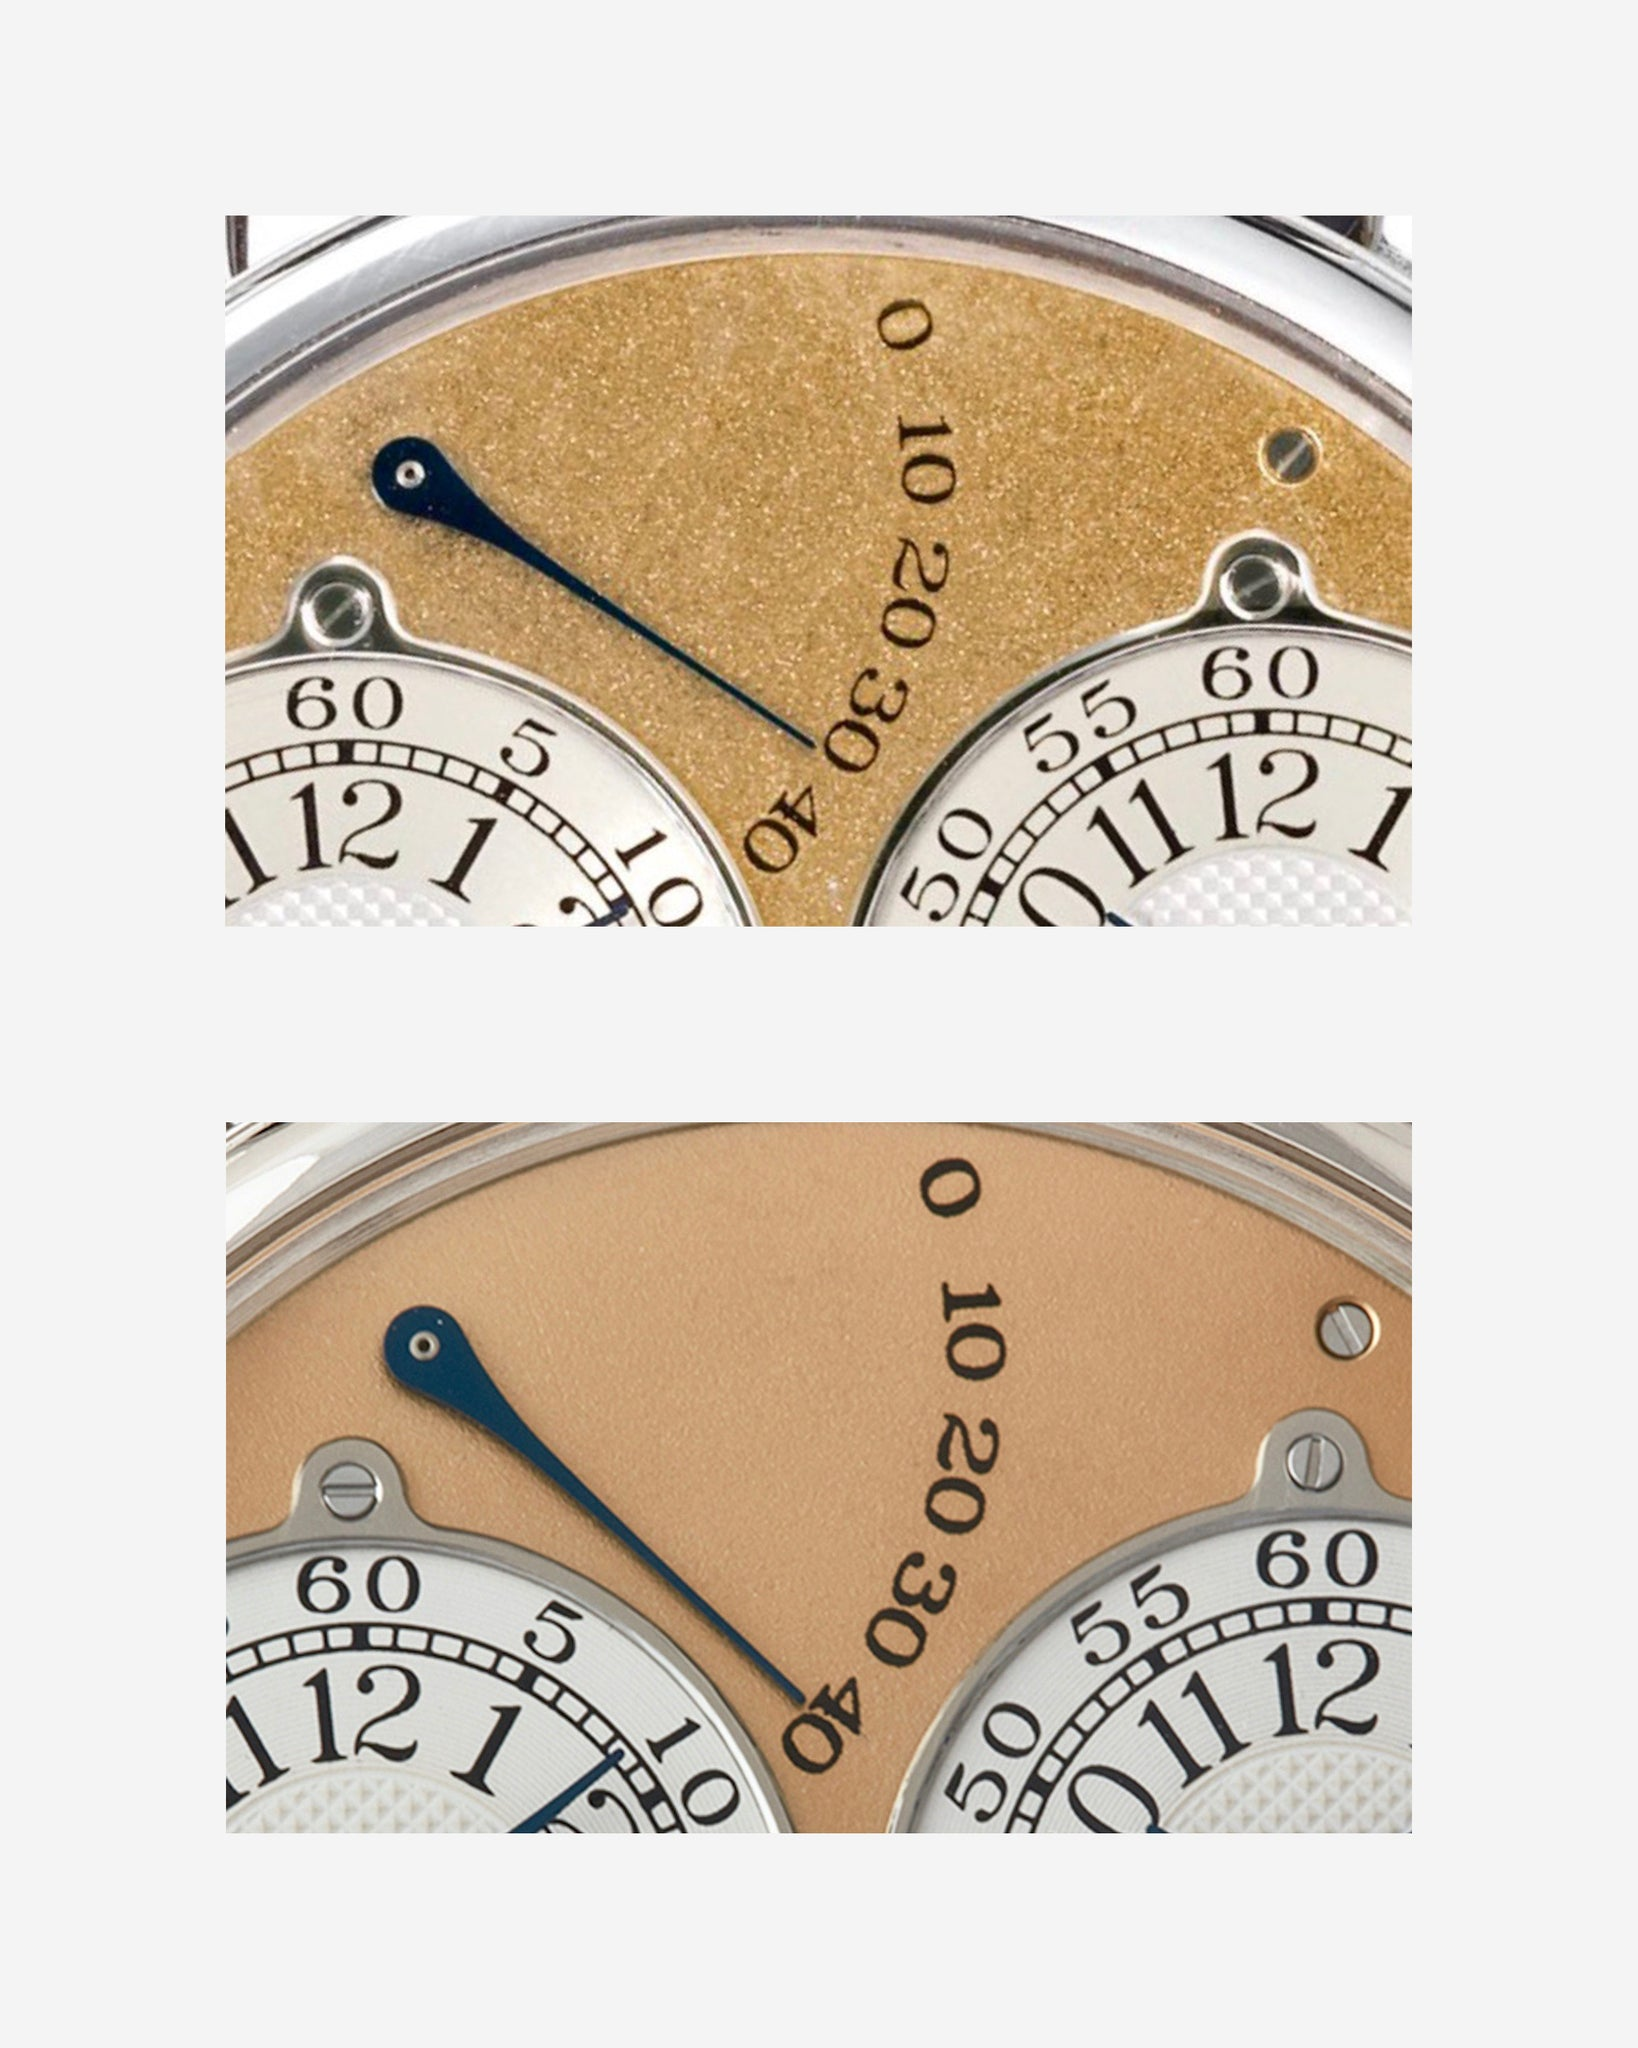 F.P. Journe Resonance power reserve styles comparing early to late